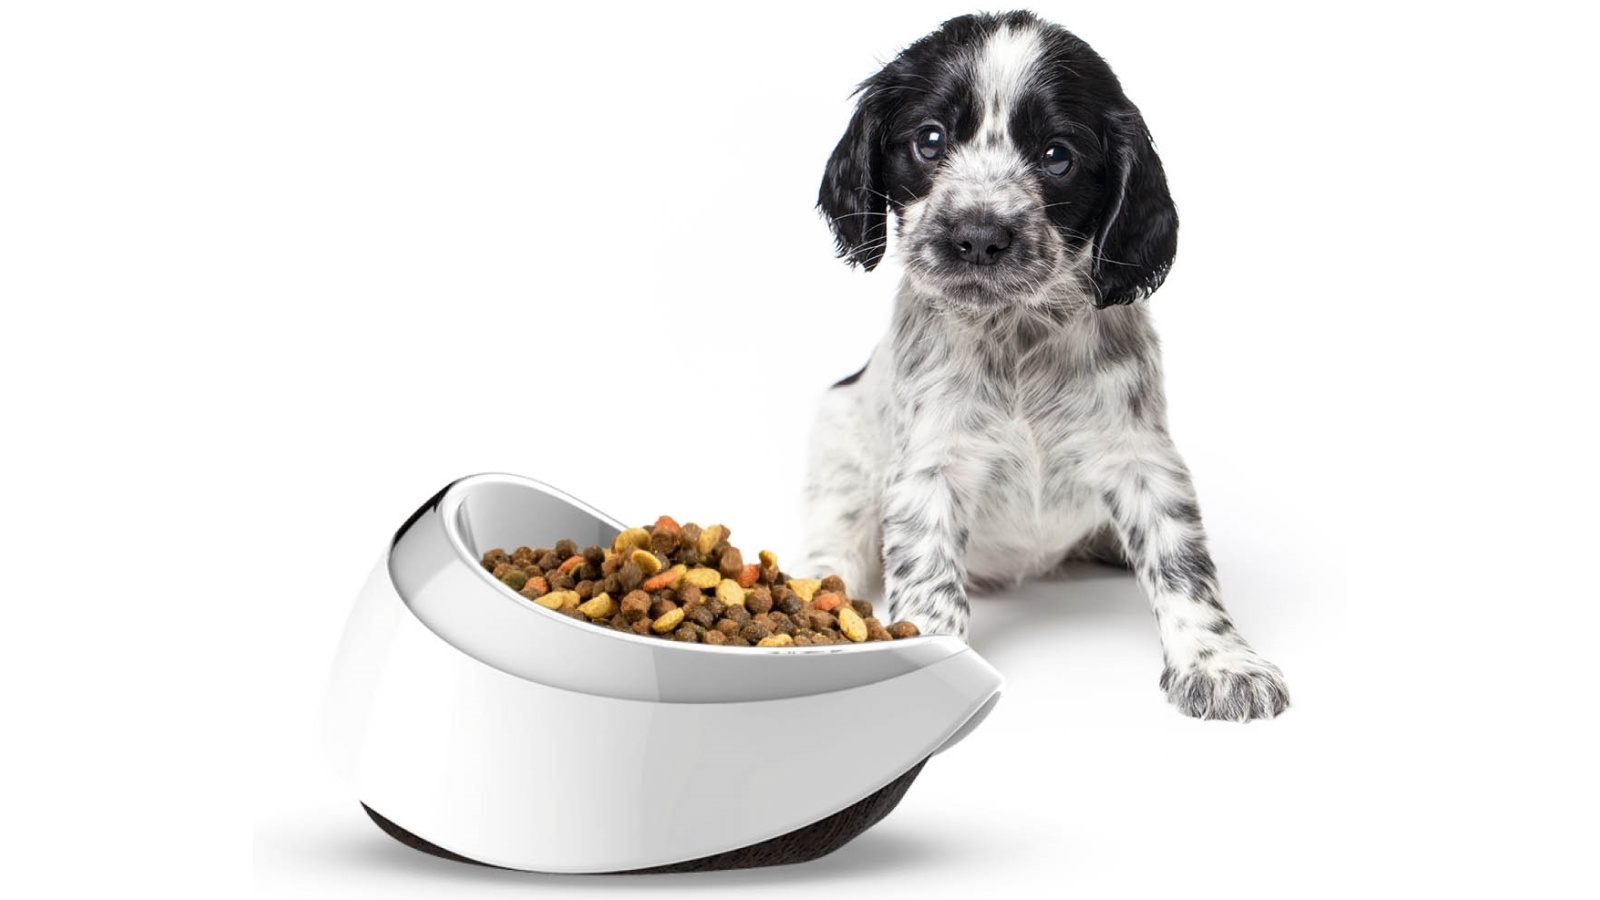 Buy Petble Pet Smart Food Bowl with In-Built Scale | Harvey Norman AU